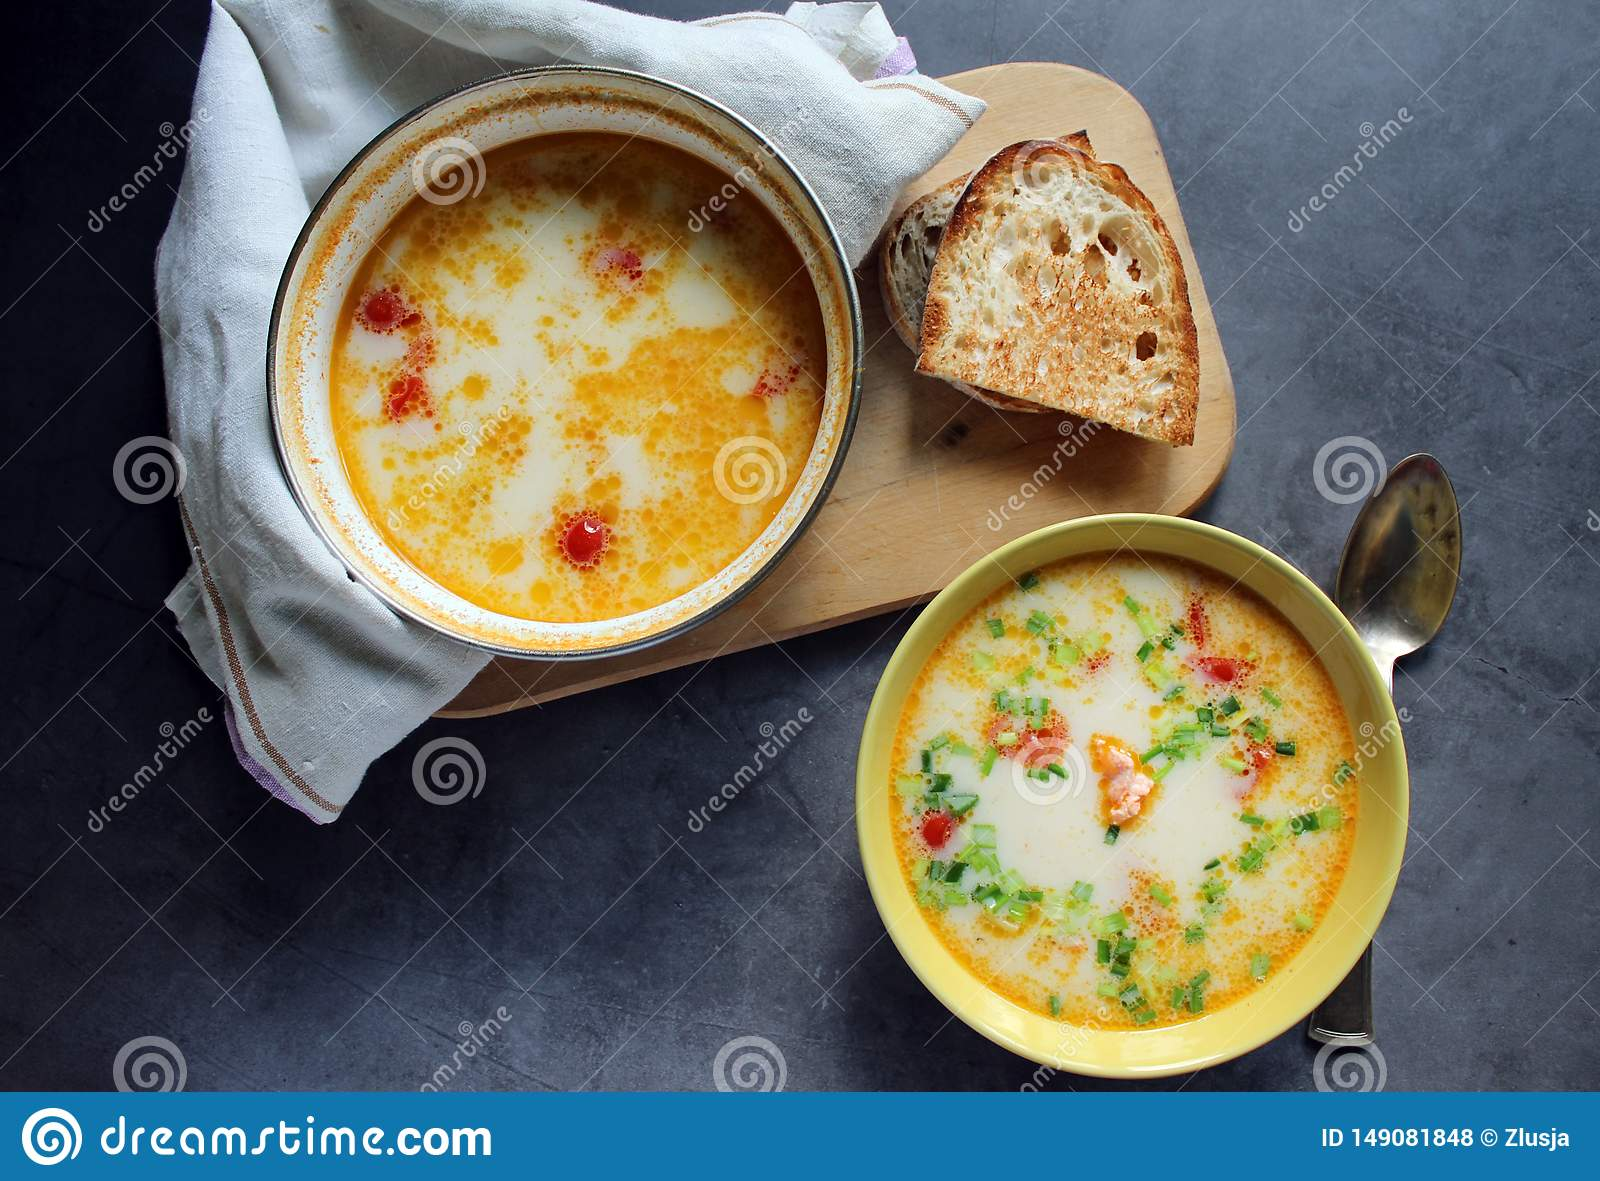 Salmon soup with cream and vegetables in a yellow plate. saucepan with salmon soup in a towel. bread on the board. on a dark backg